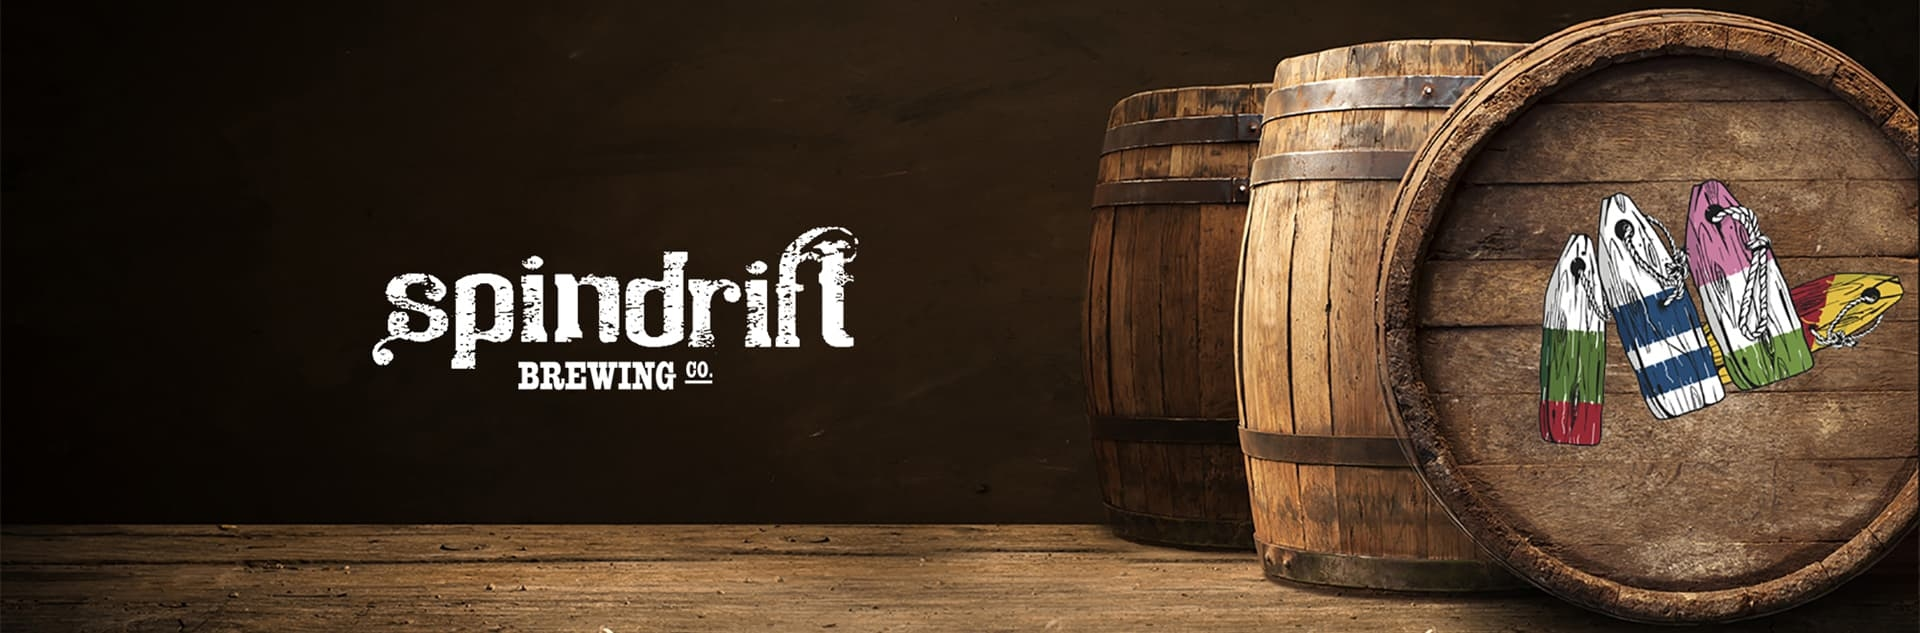 Spindrift Brewery Co.